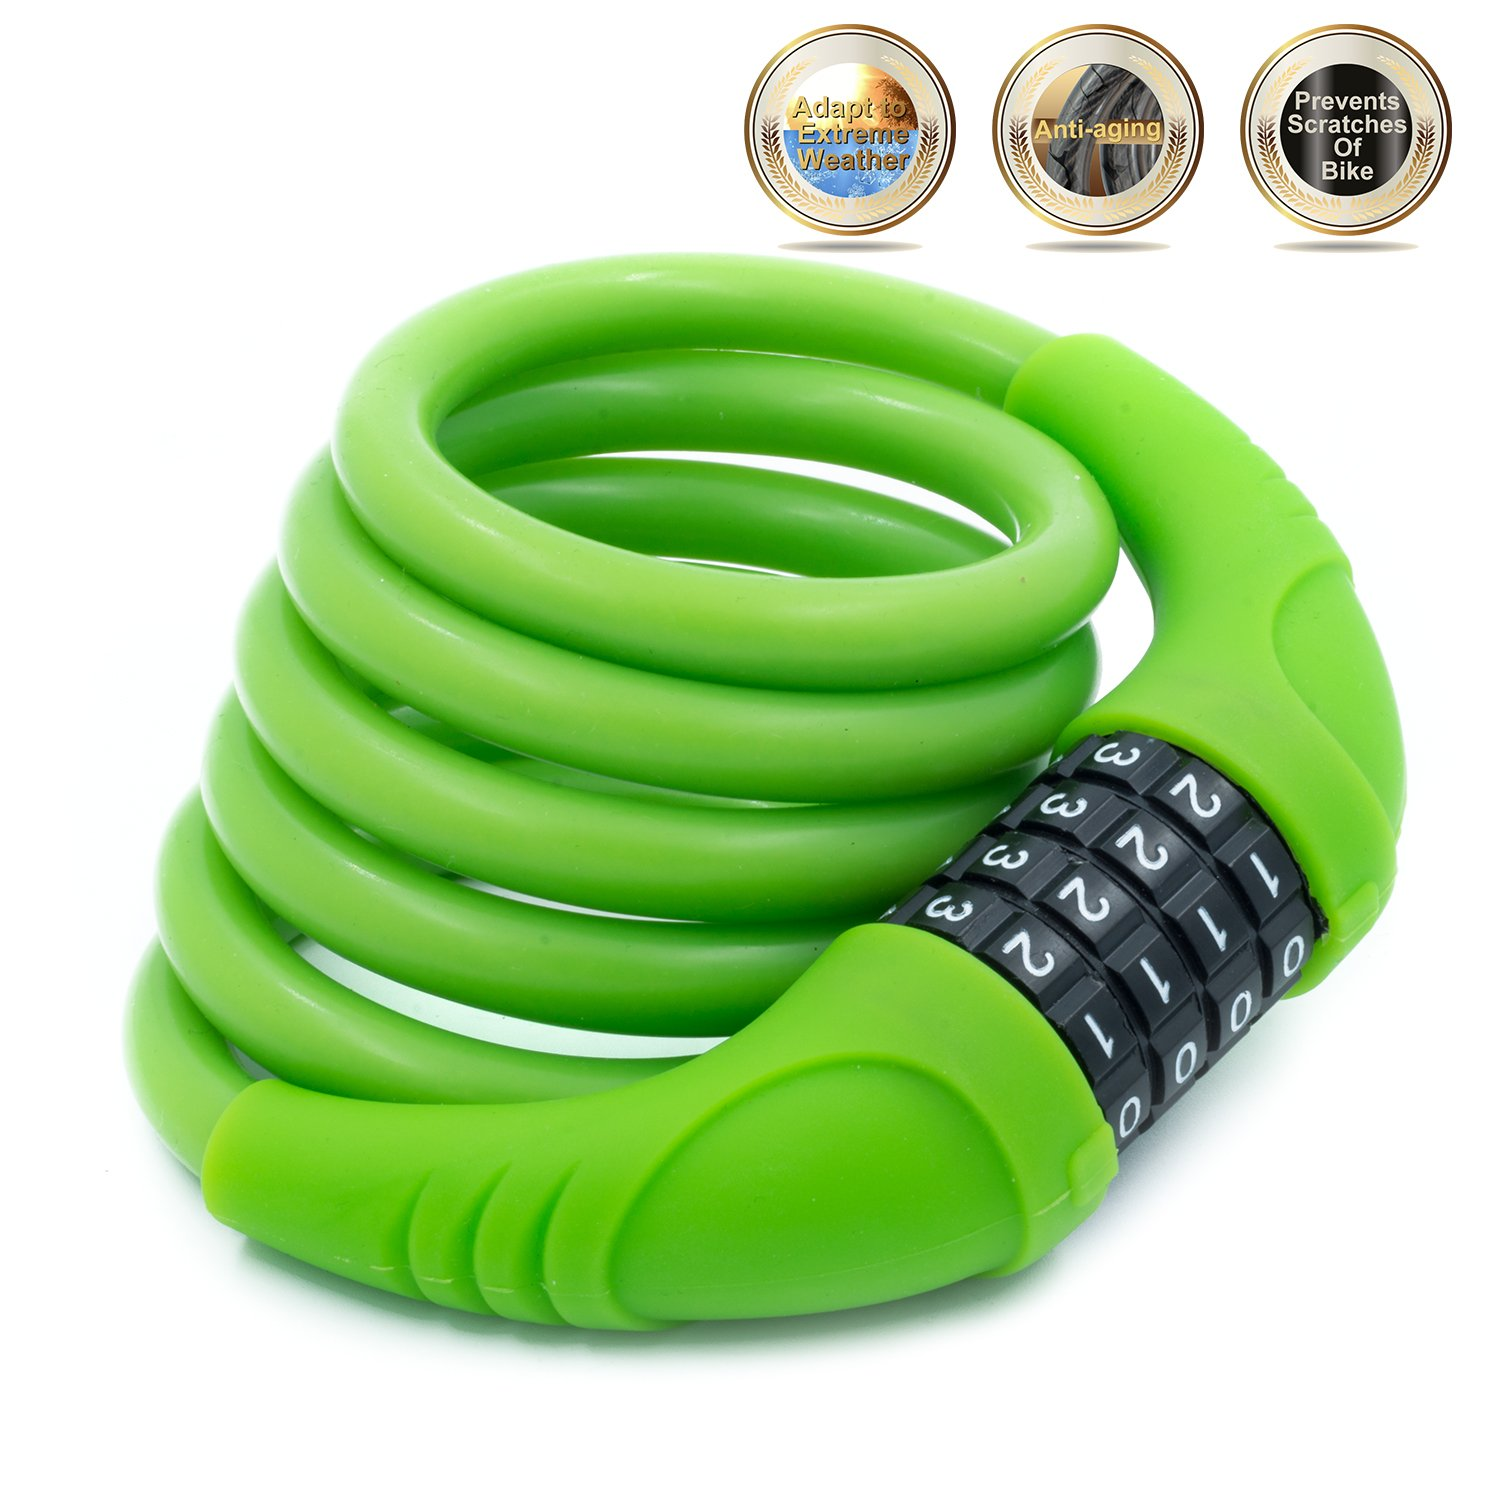 SUSEMSE Silicone Covered Bike Cable Lock G503 Self-Coiling 4.43FT10MM UV Resistance Anti Scratch Resettable 4-Digit Combination Bike Lock for Sporting Bicycle Cycling